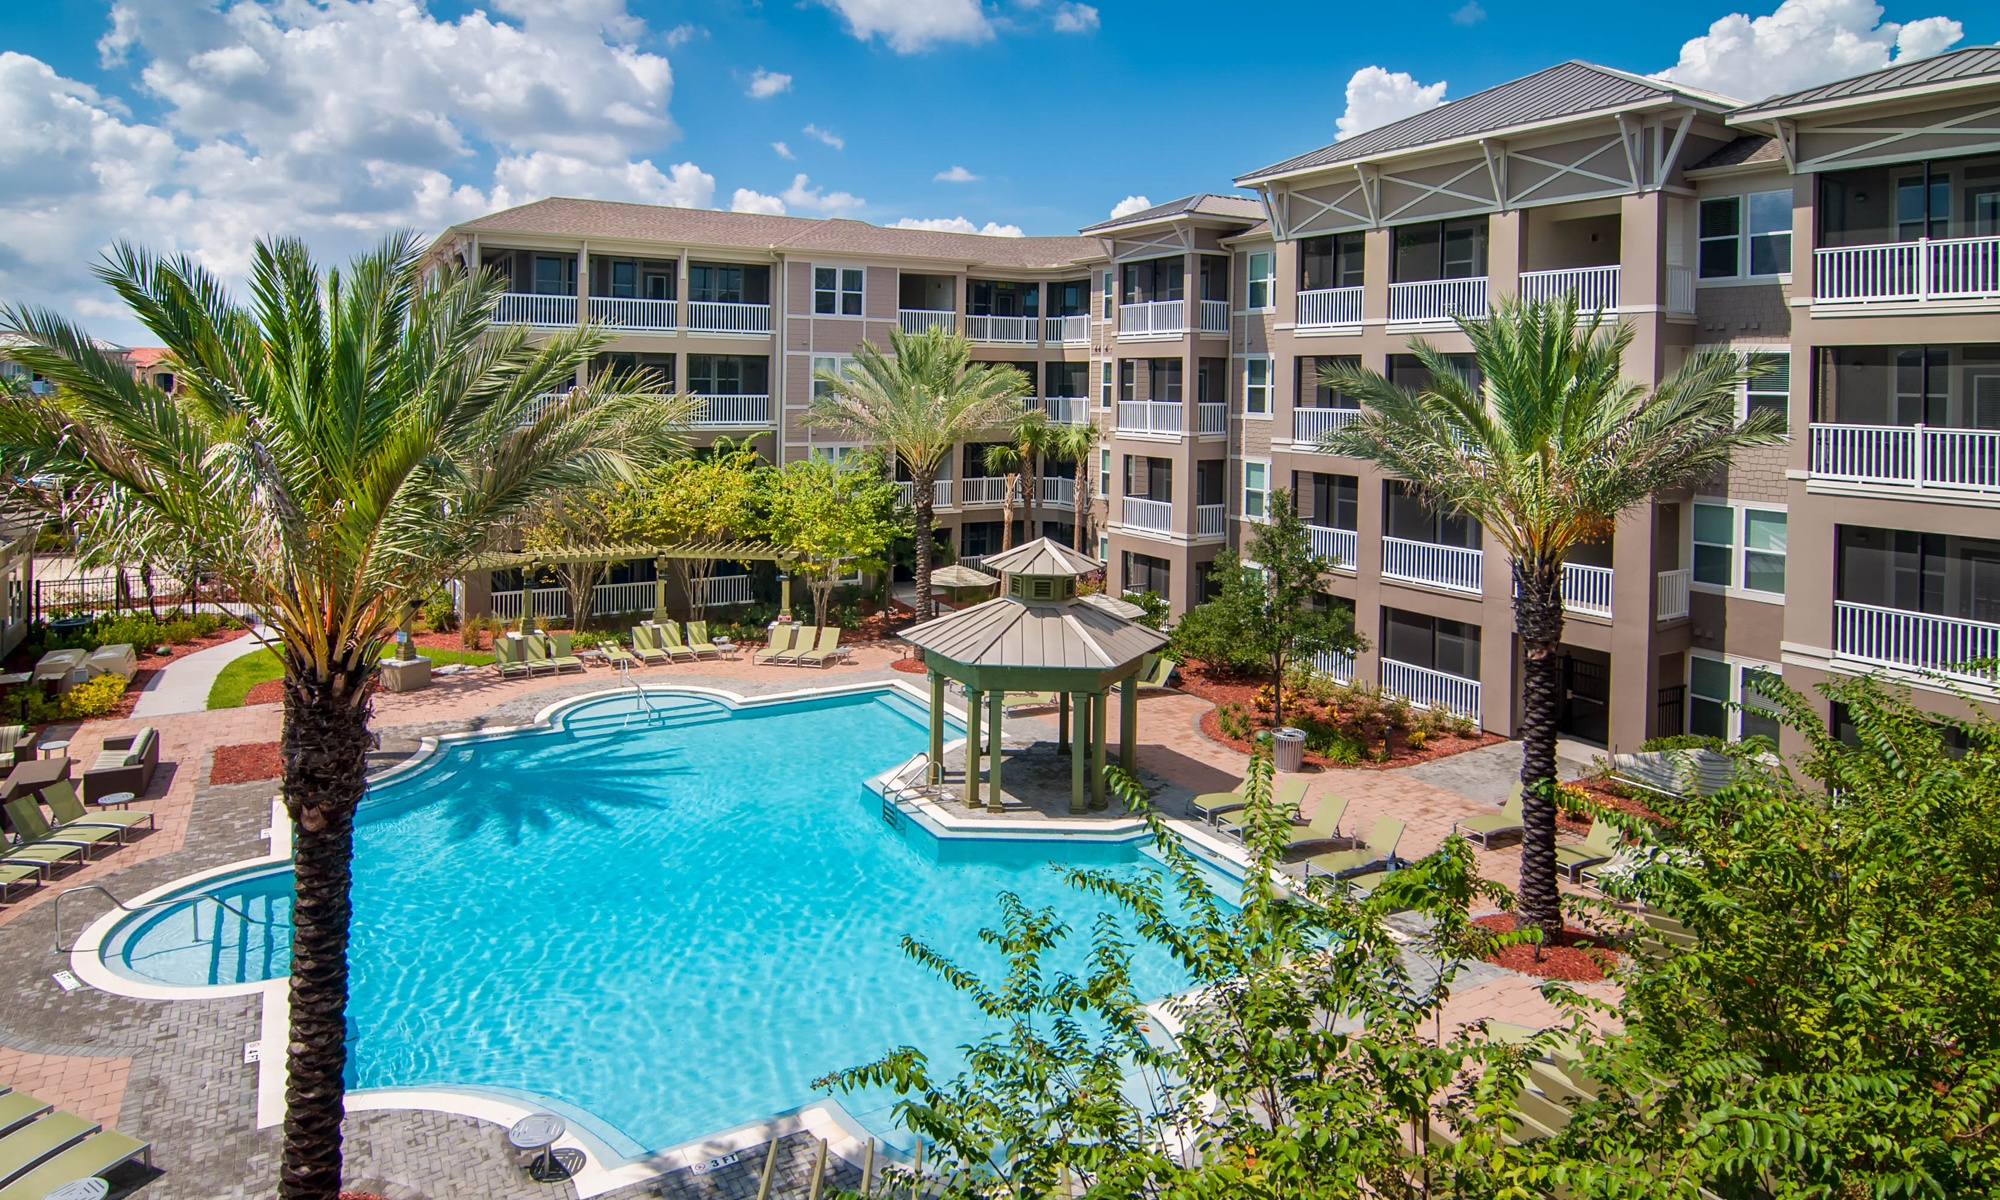 Azure Apartment Homes in St. Petersburg, FL